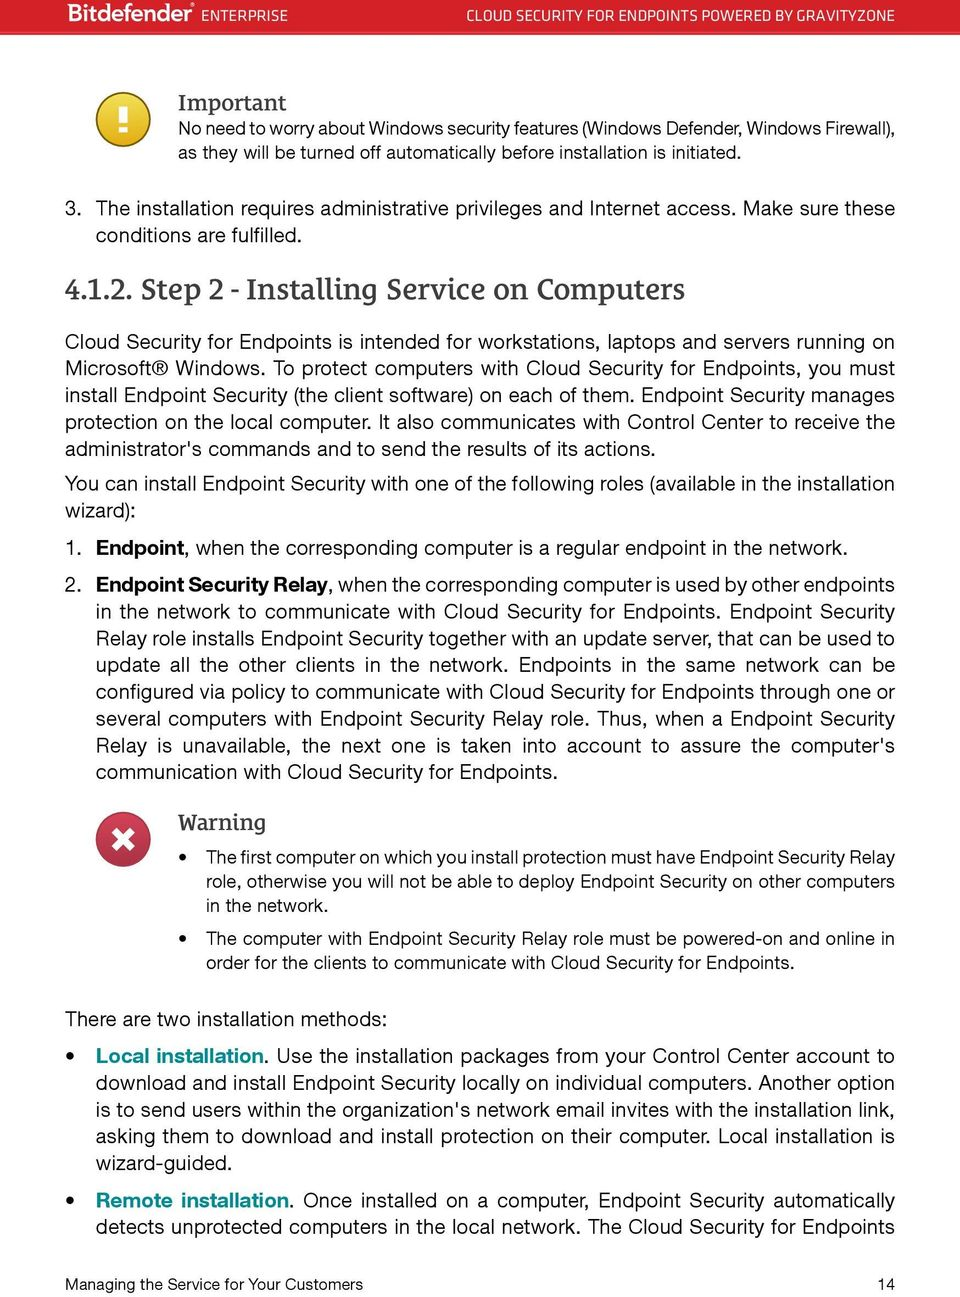 Step 2 - Installing Service on Computers Cloud Security for Endpoints is intended for workstations, laptops and servers running on Microsoft Windows.